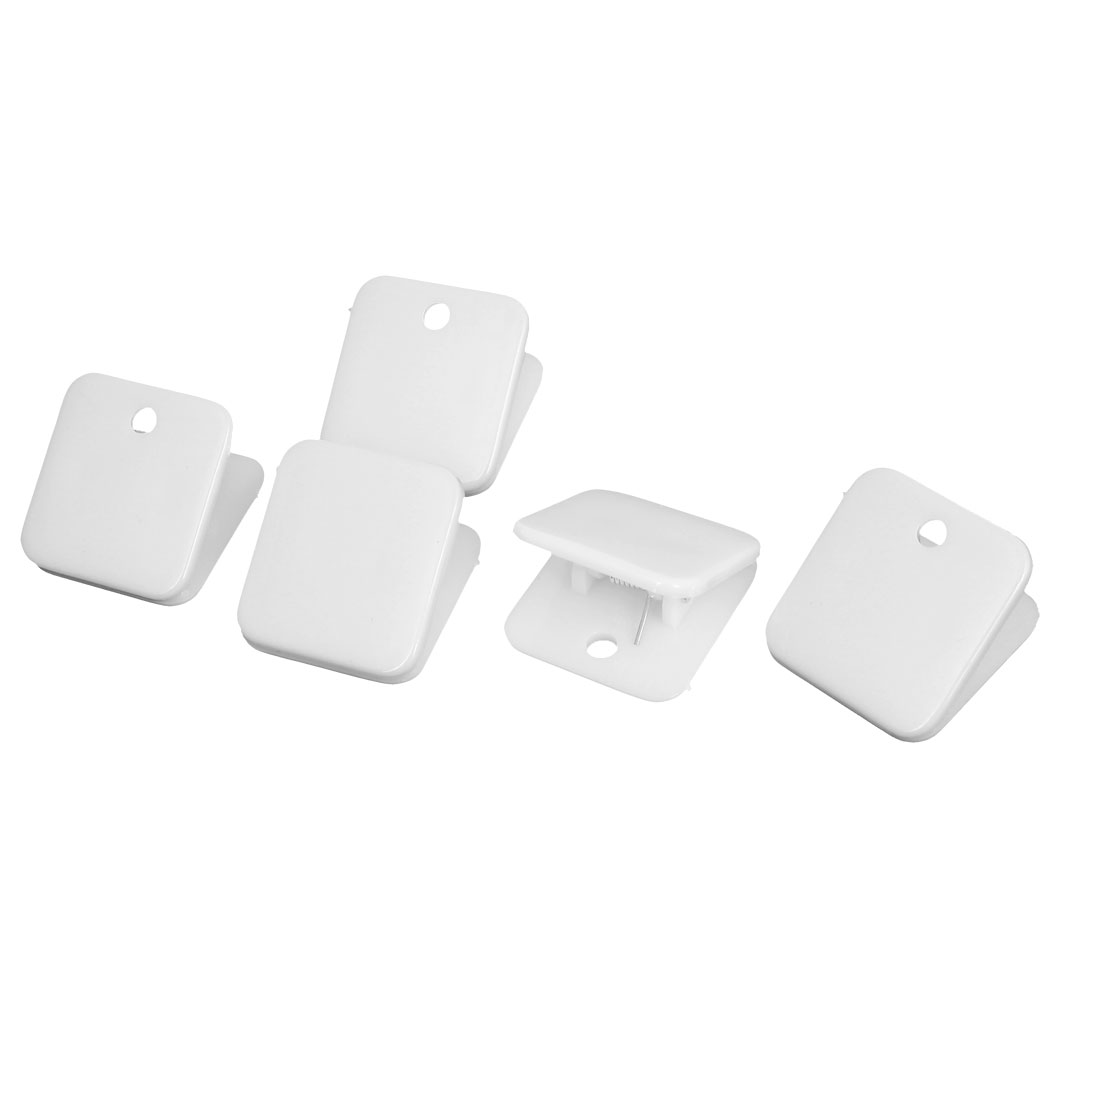 Plastic Square Spring Loaded Paper Document Memo Note Stationery Clip White 5Pcs